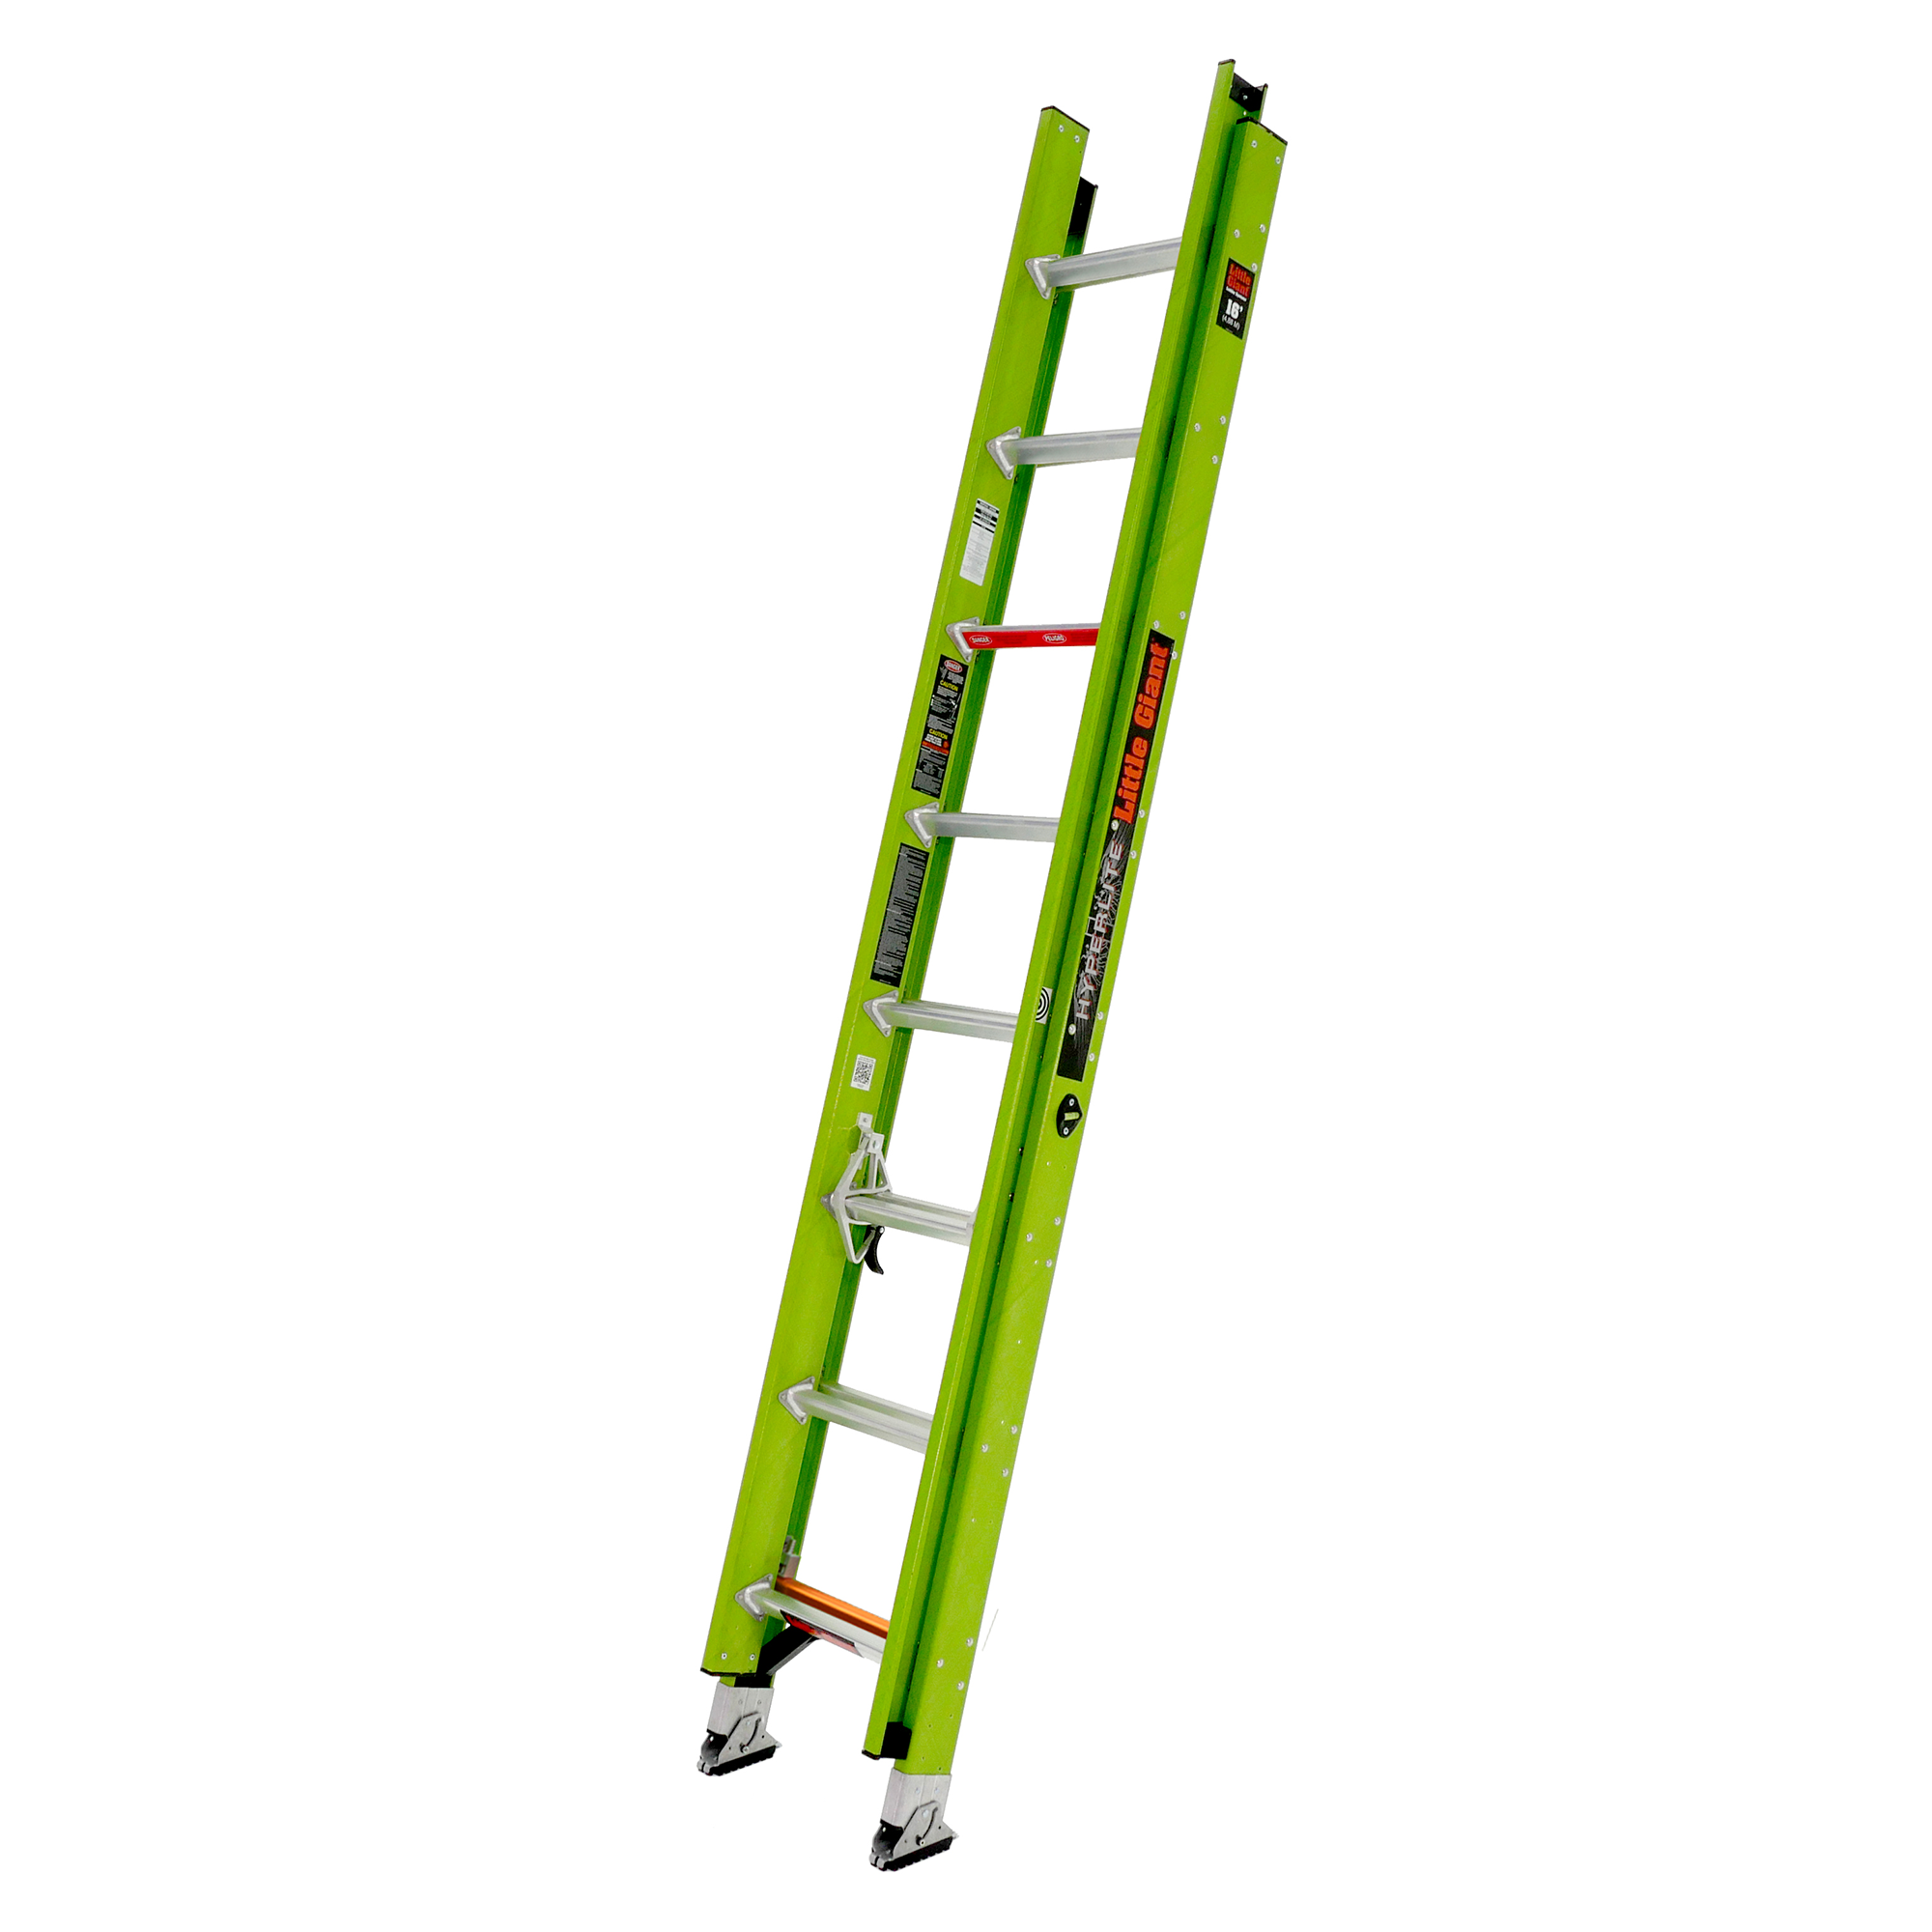 16 Ft. HyperLite Fiberglass Extension Ladder - Type IAA